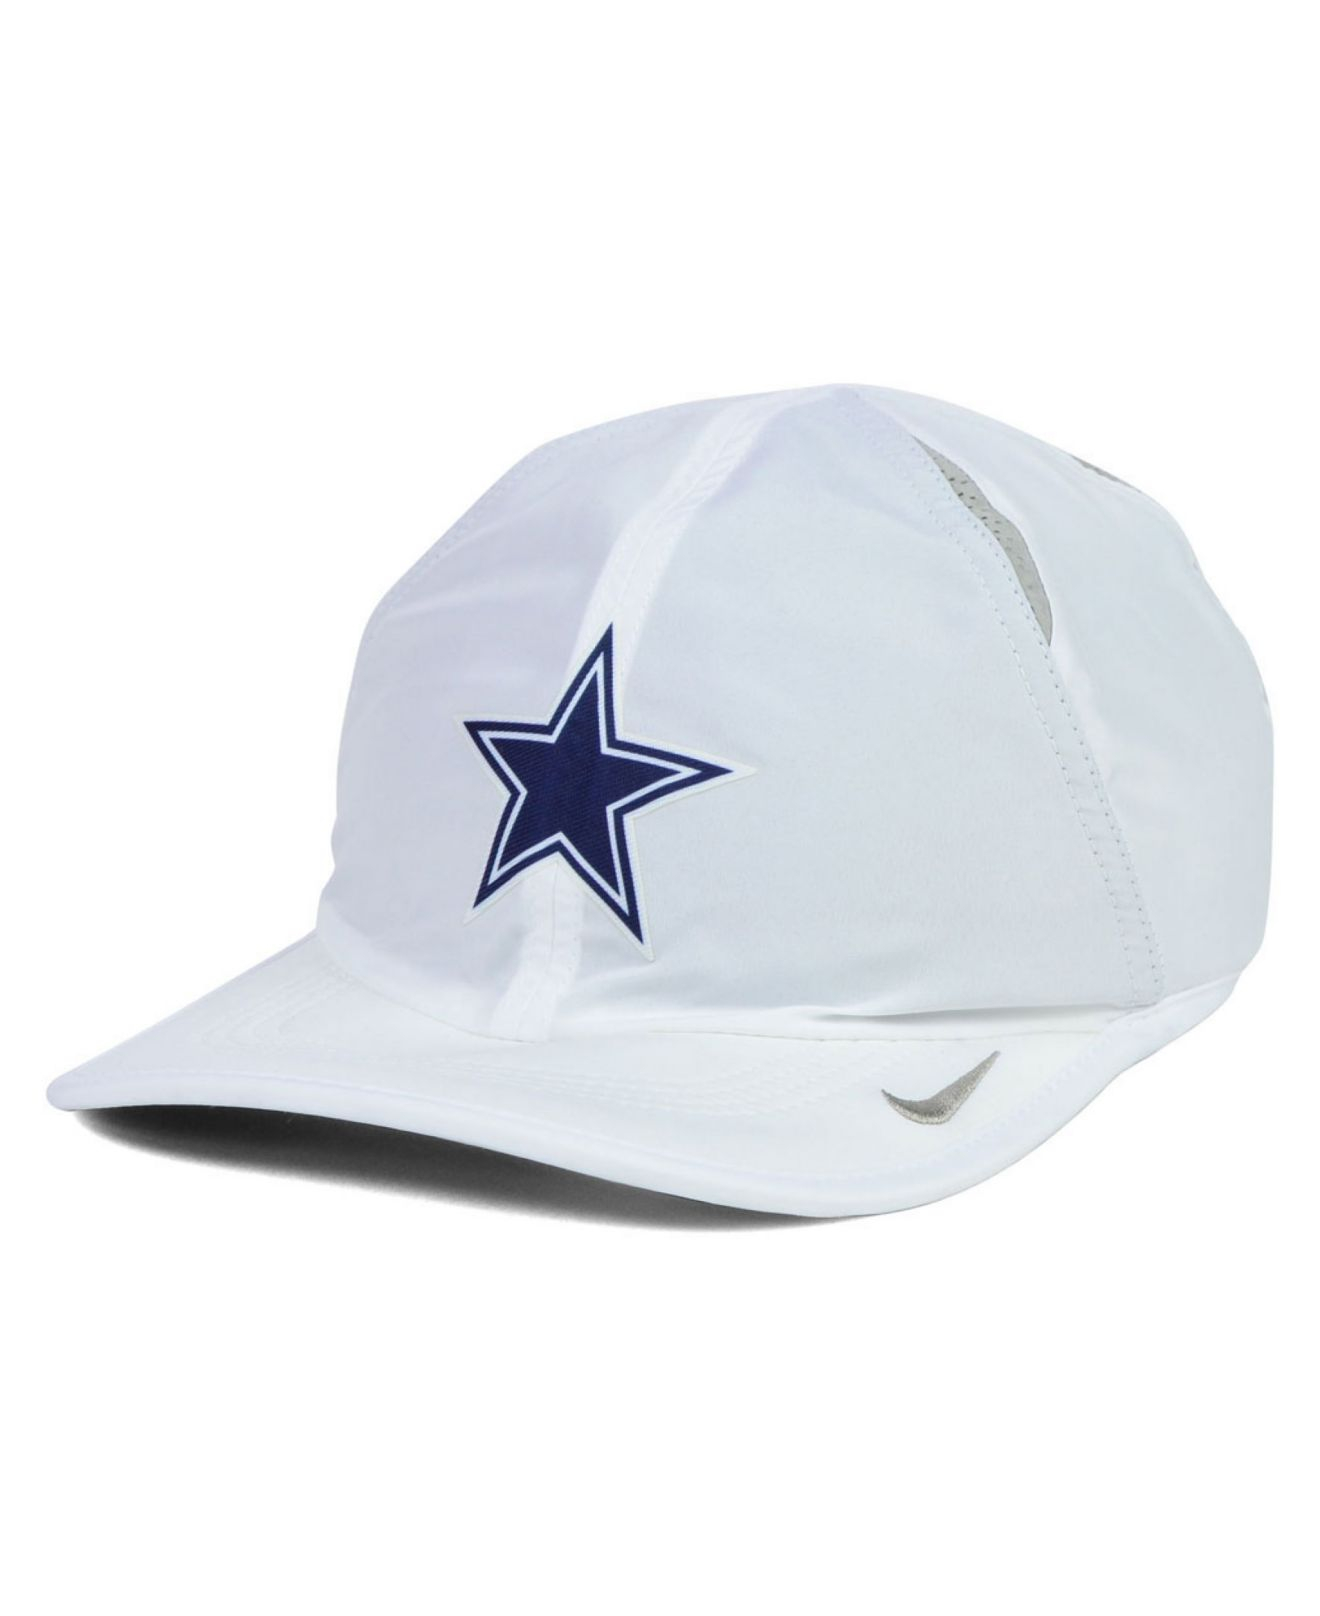 25ab64076c7b69 Lyst - Nike Dallas Cowboys Featherlight Cap in White for Men